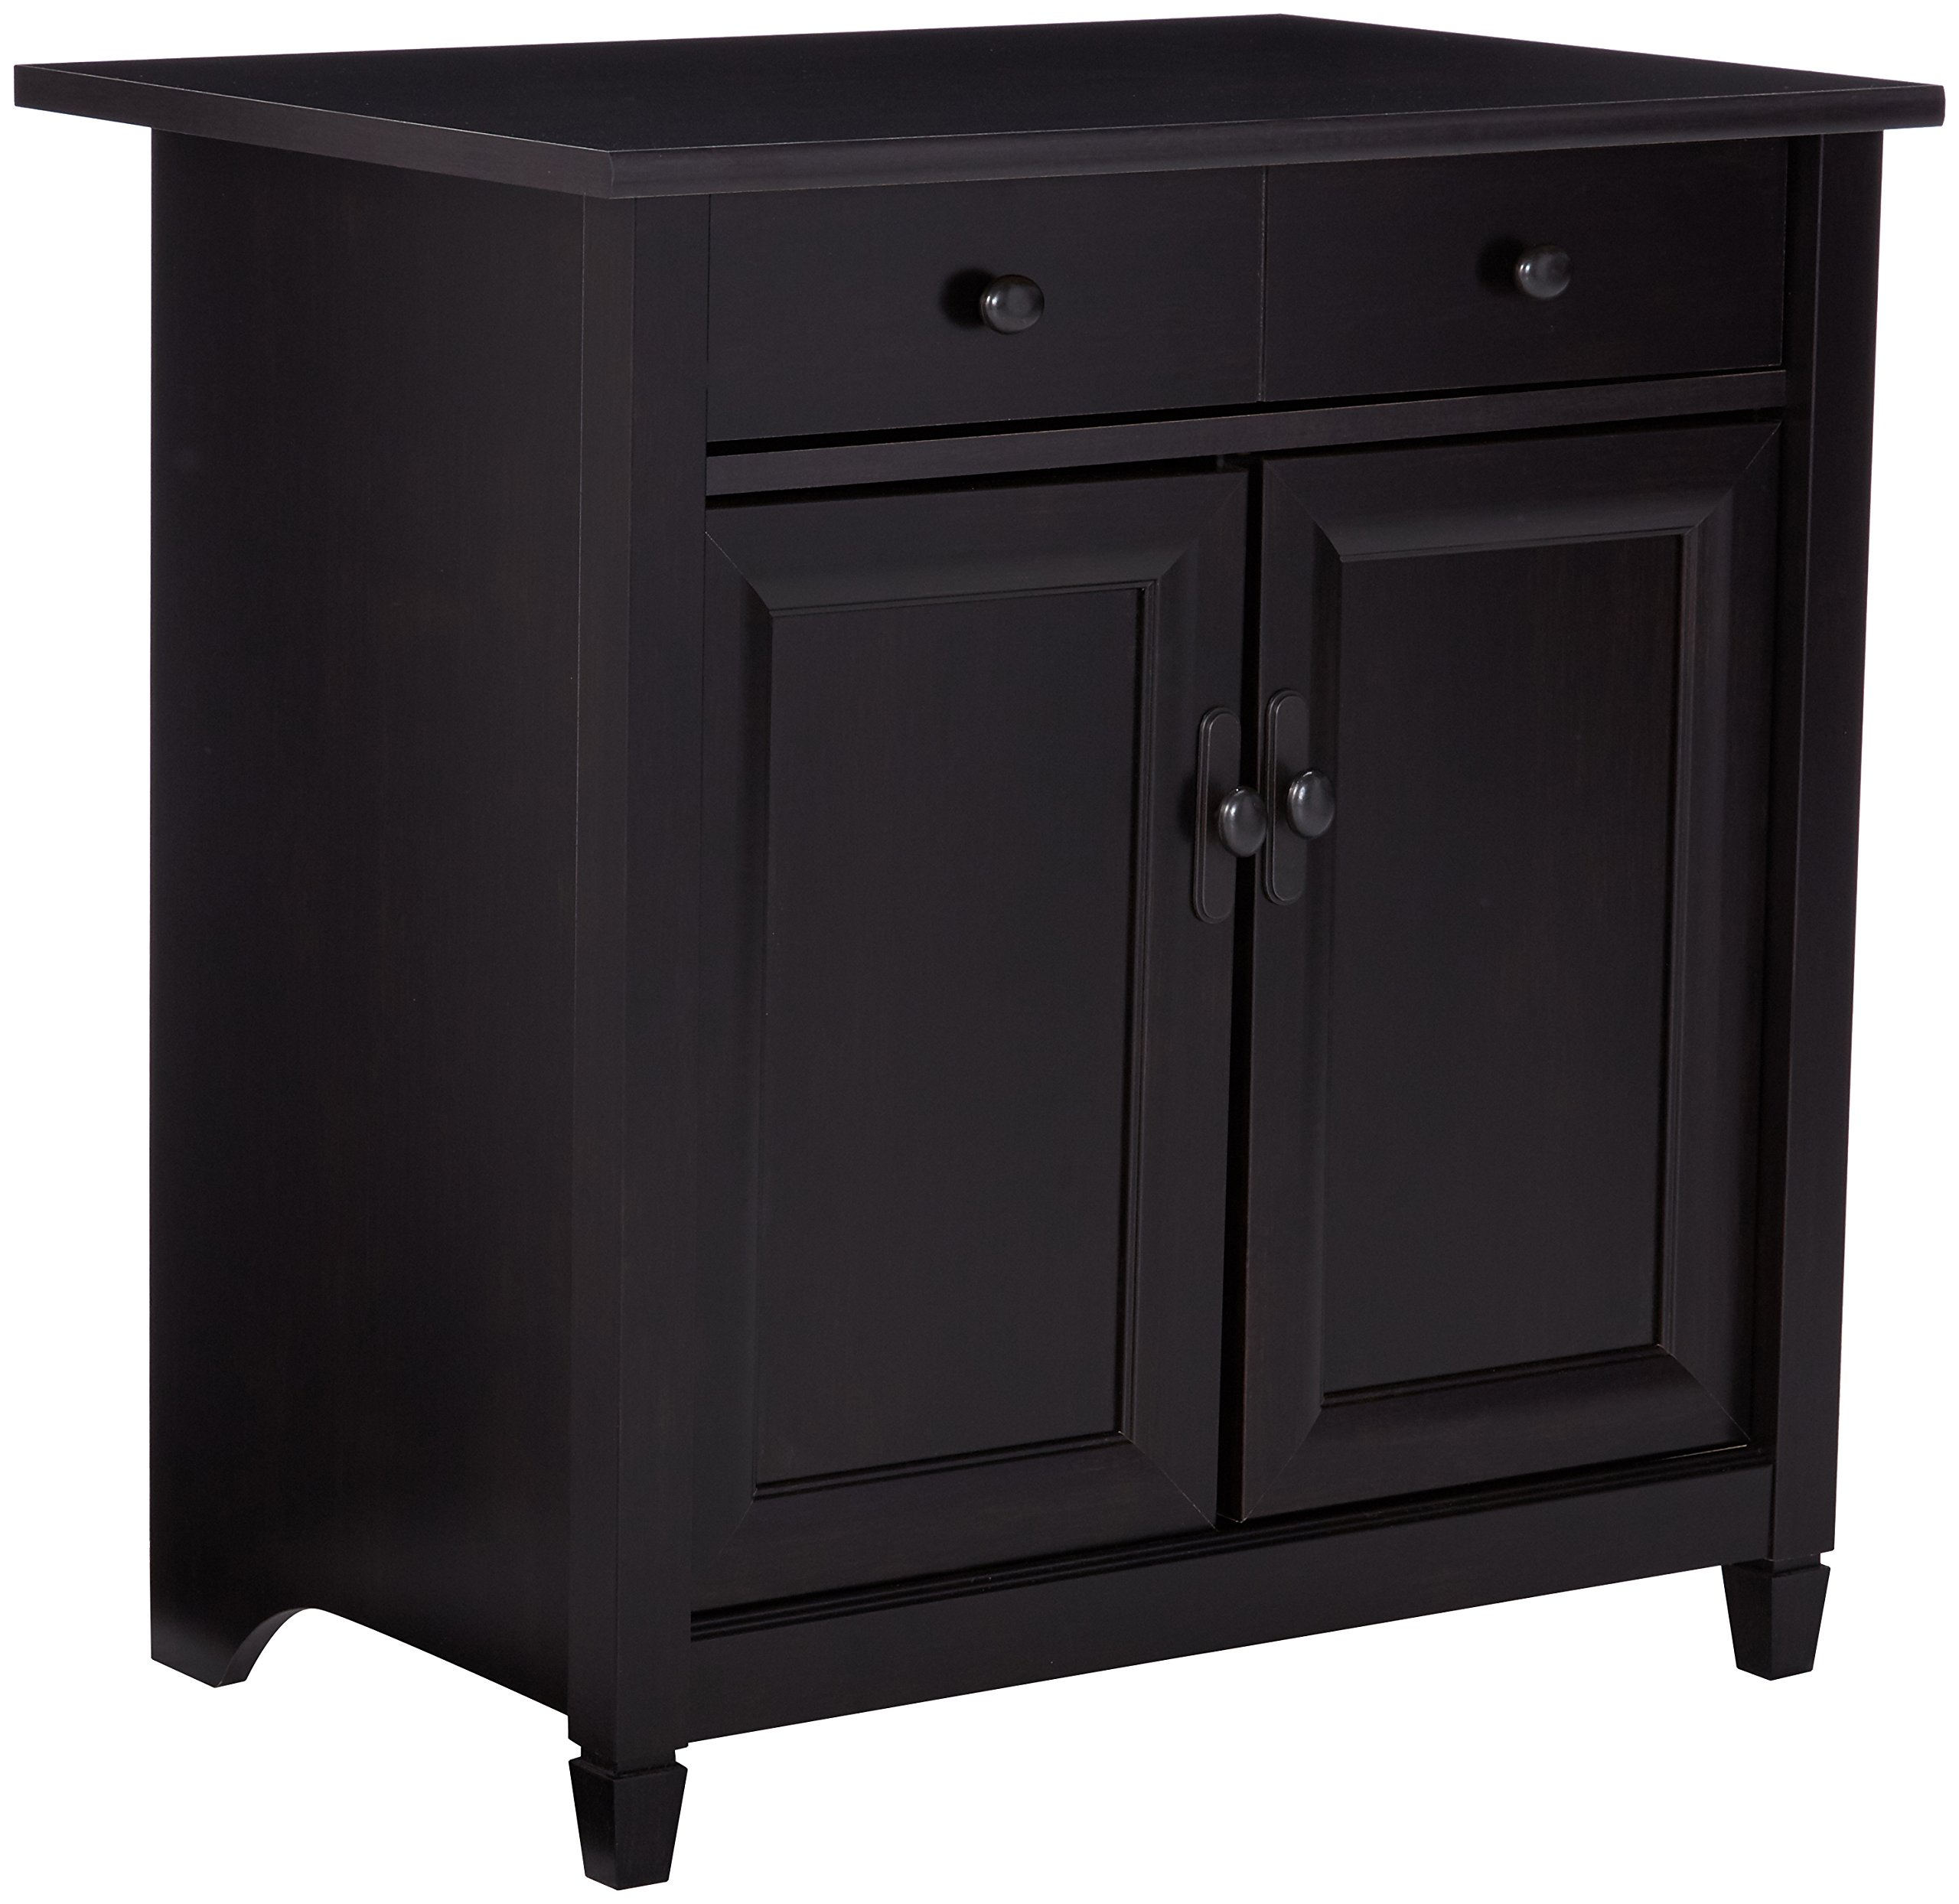 Sauder 408696 Edge Water Utility Cart/Stand, L: 28.19'' x W: 19.45'' x H: 29.02'', Estate Black finish by Sauder